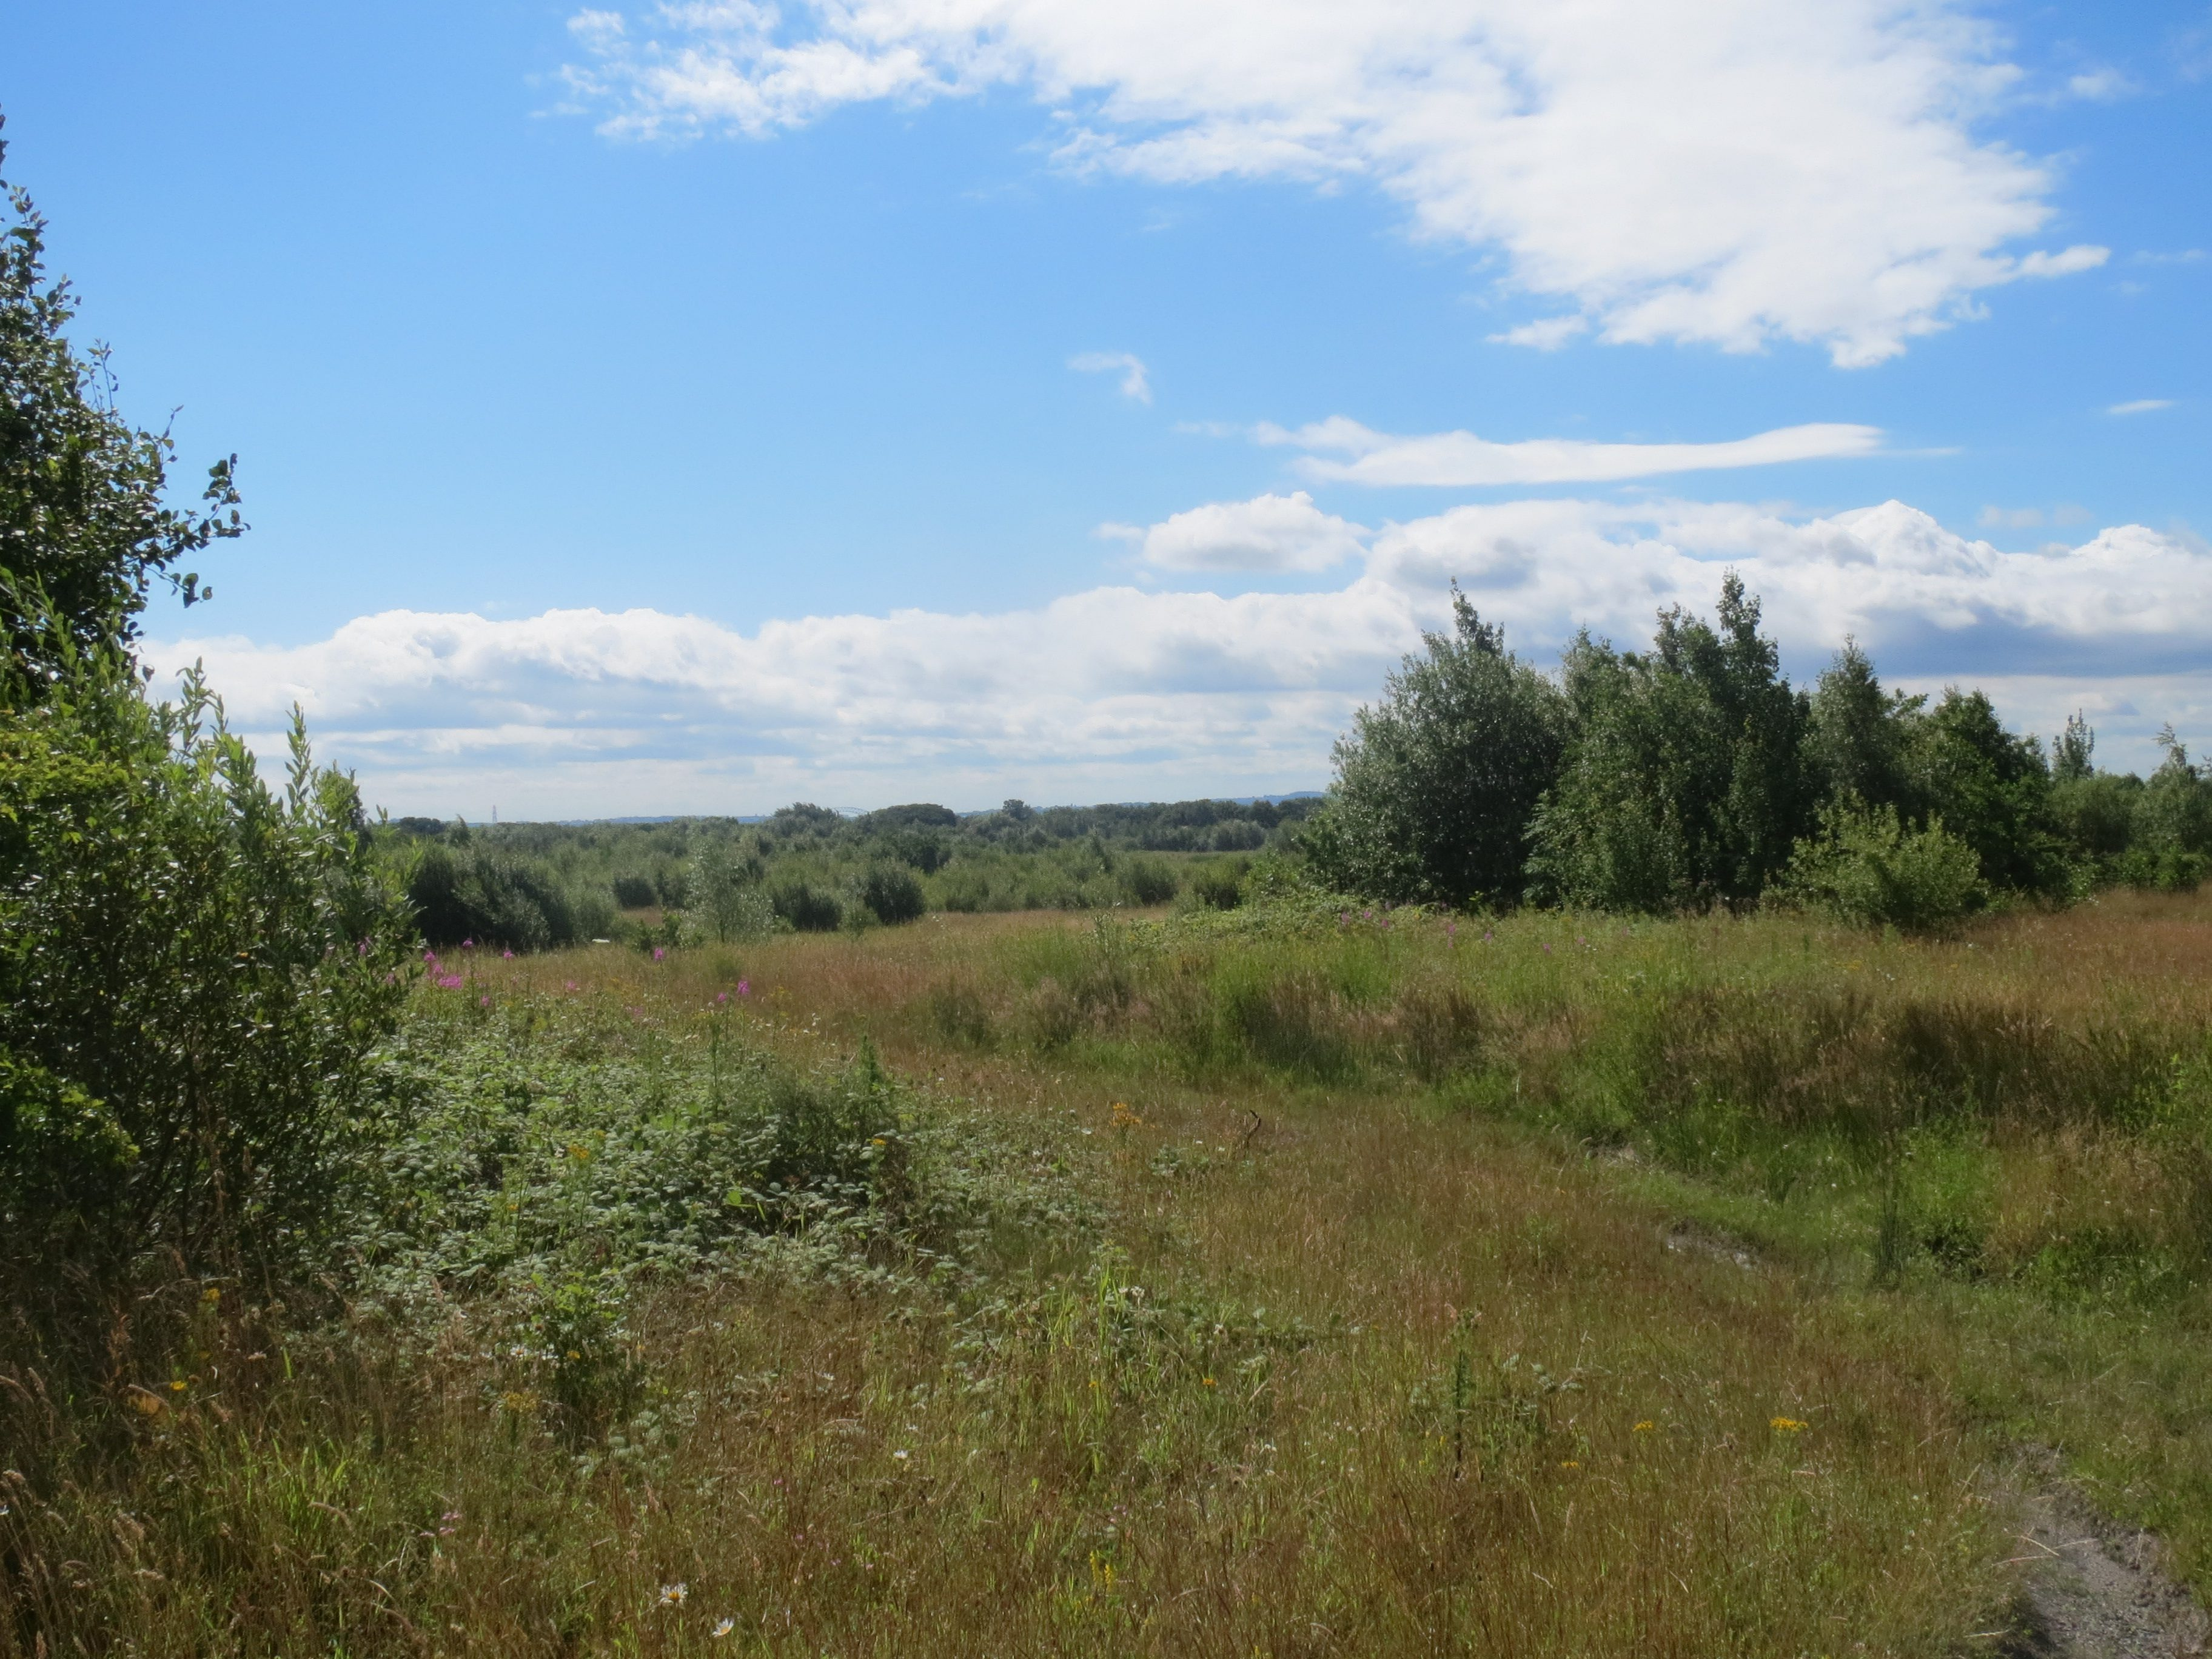 View of the land at Cronton Colliery on a sunny day